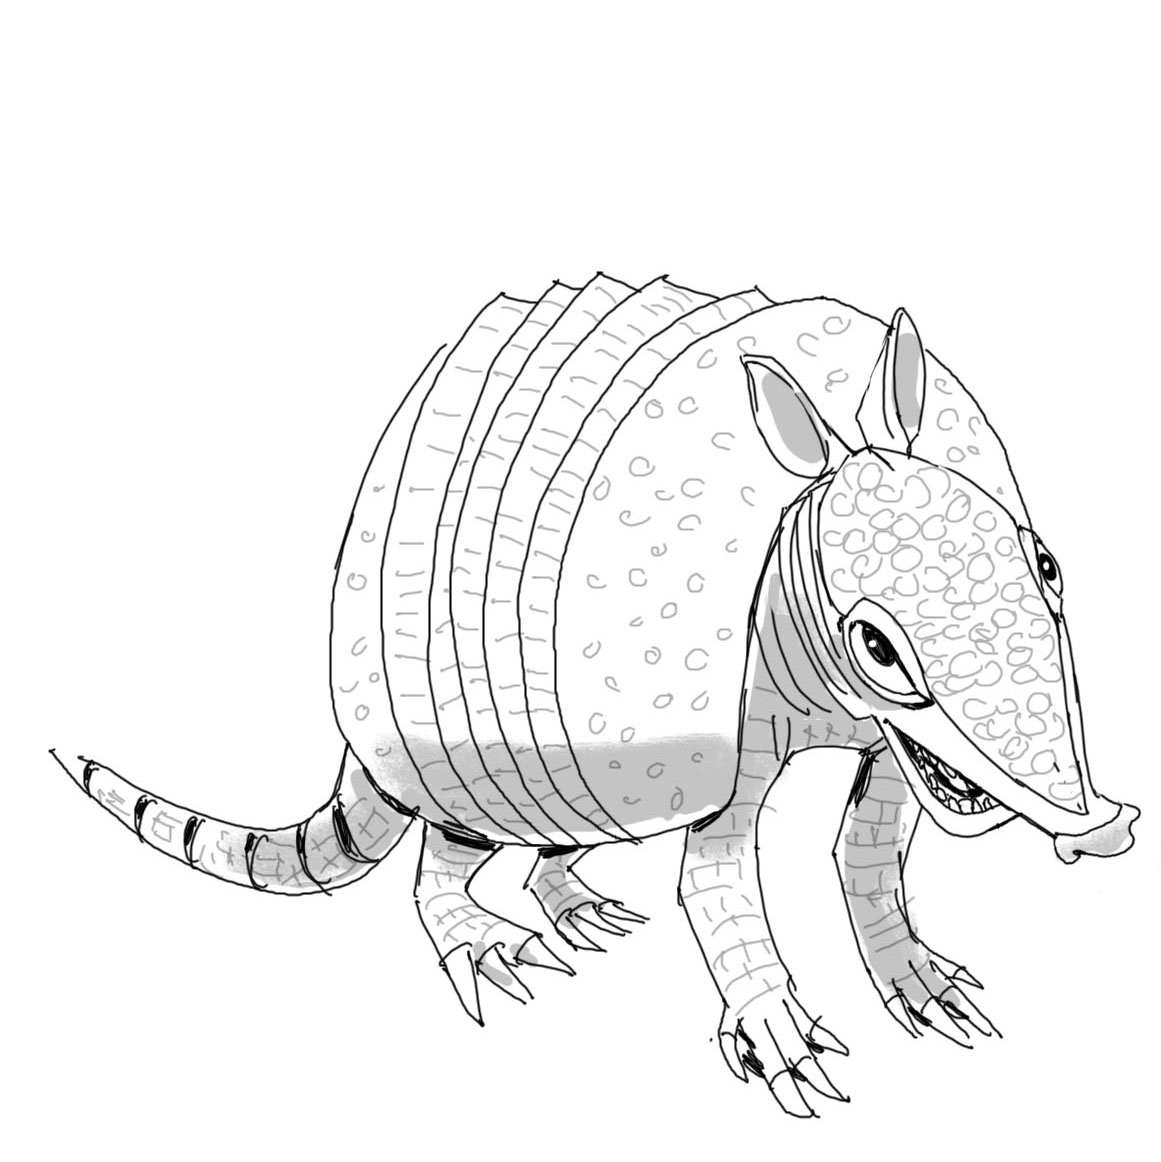 armadillo_housespecial_sketches3.jpg